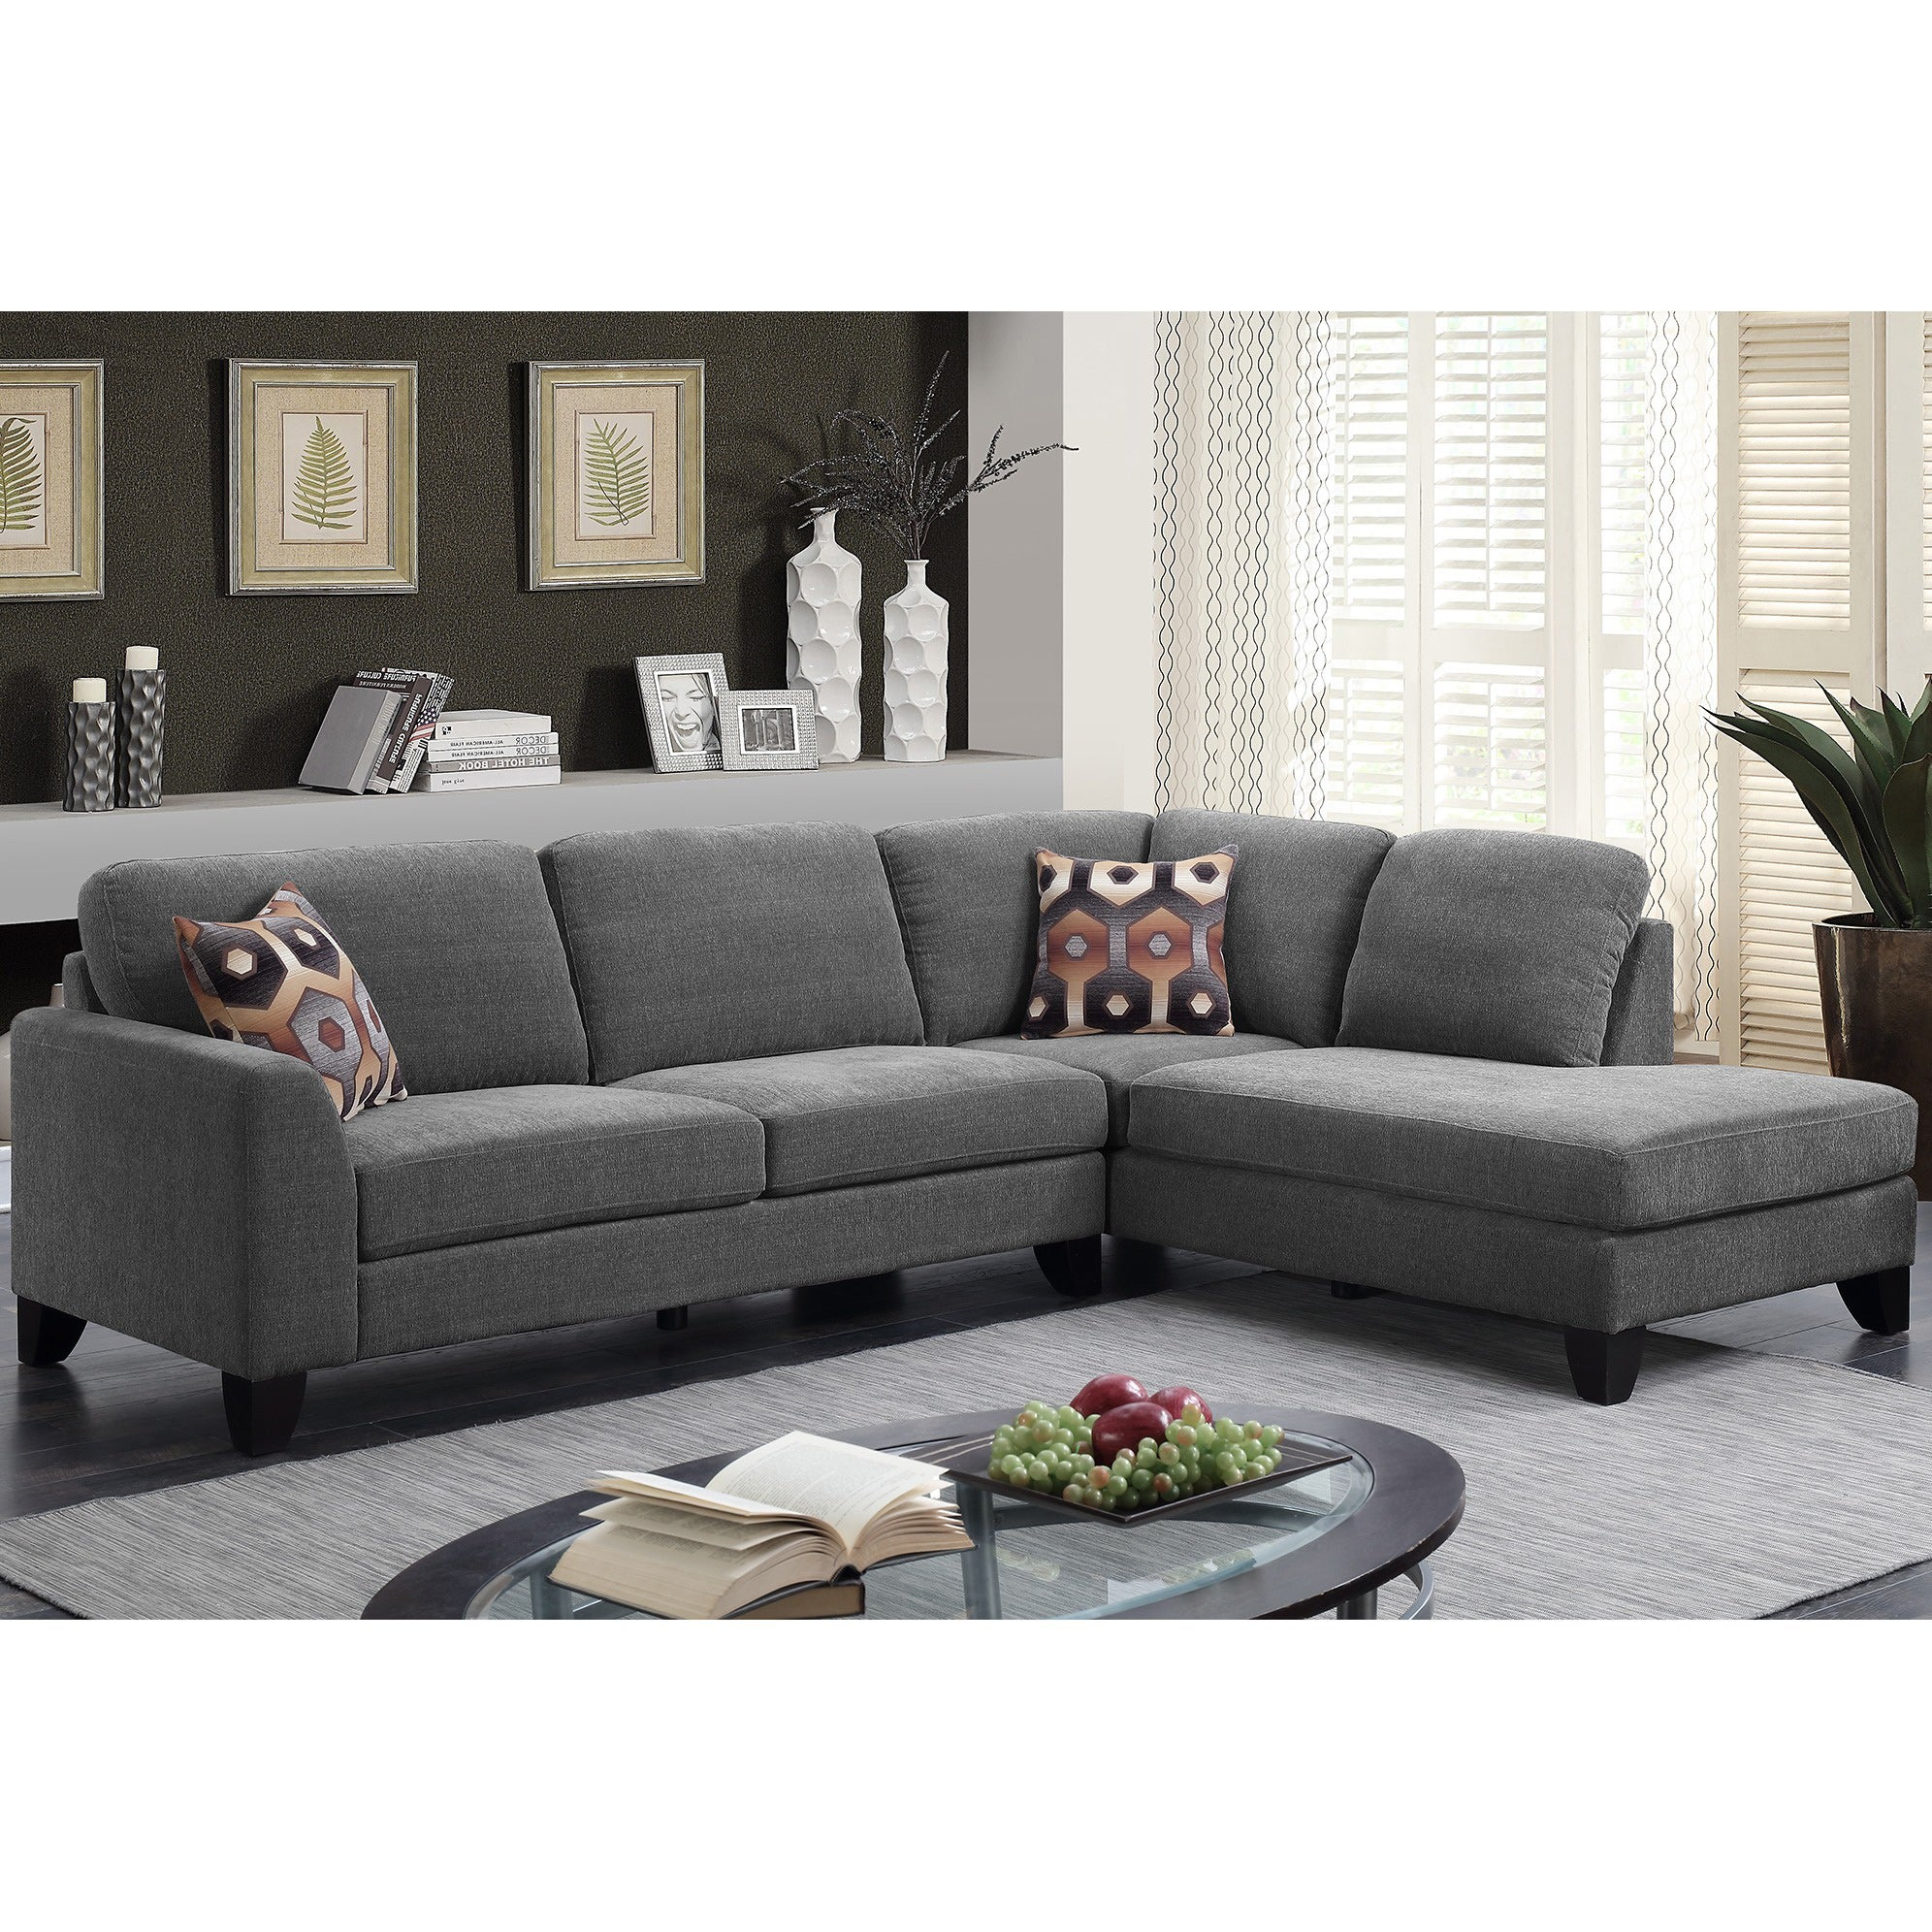 Porter Monza Grey Chenille Sectional Sofa with Optional Geometric